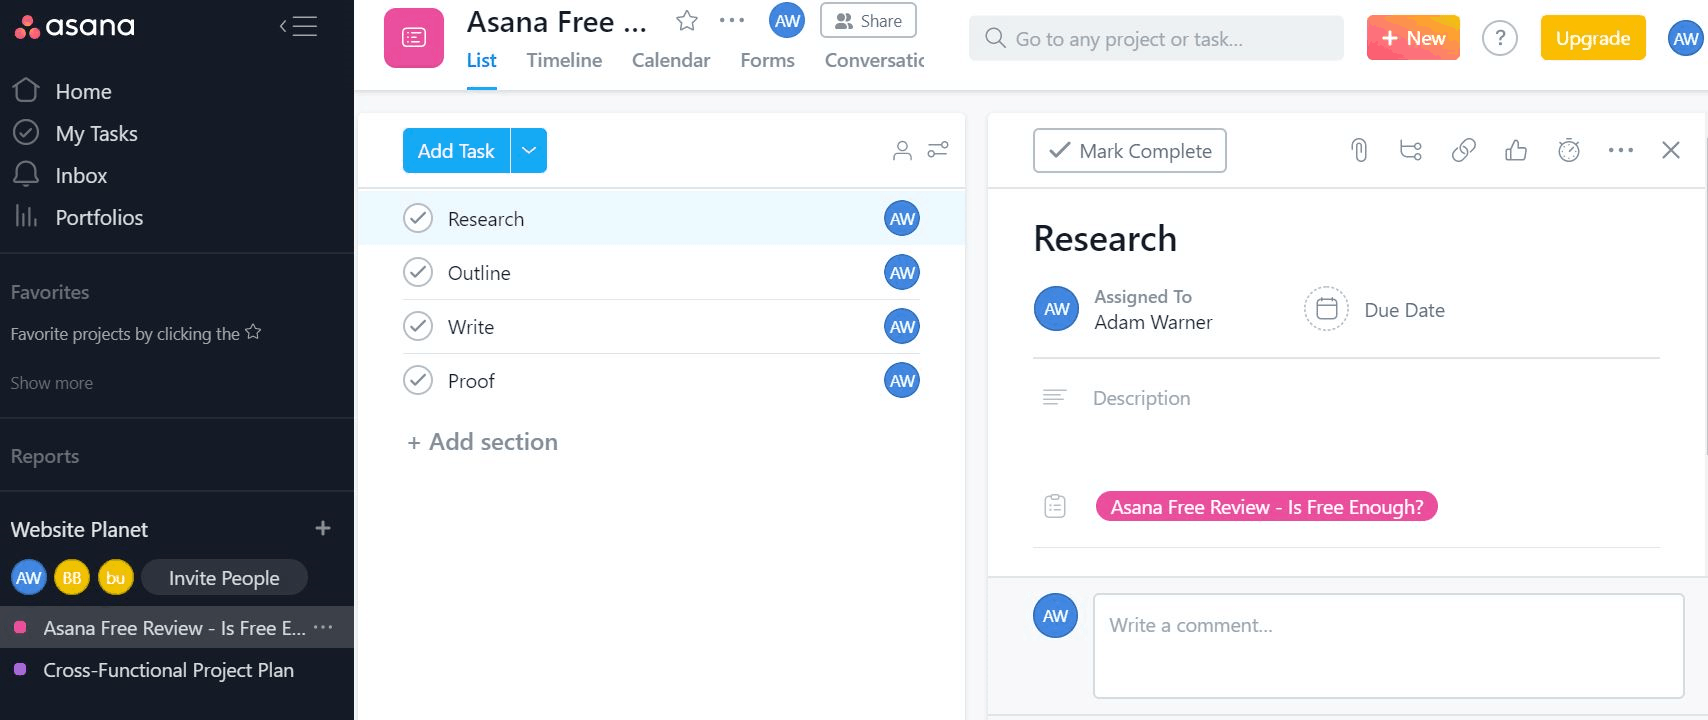 Asana Review - Can You Get By with the Free Version-image1